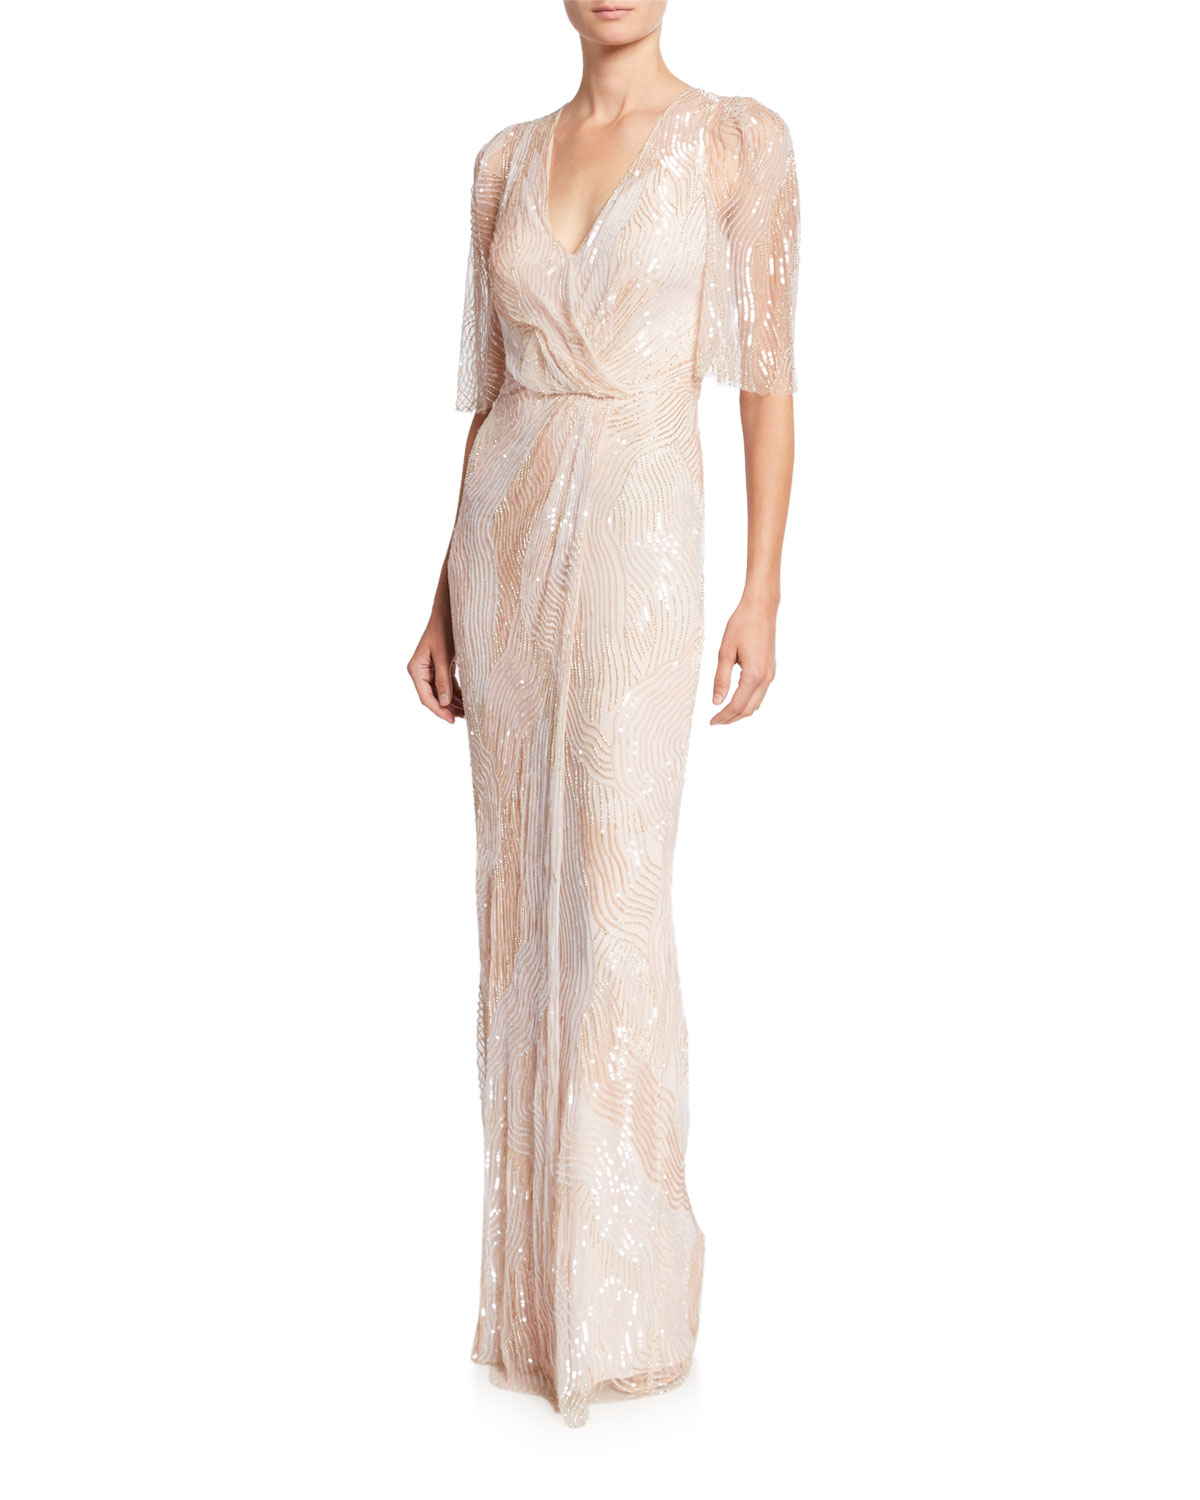 Jenny Packham Tops SEQUINED TULLE CROSSOVER COLUMN GOWN